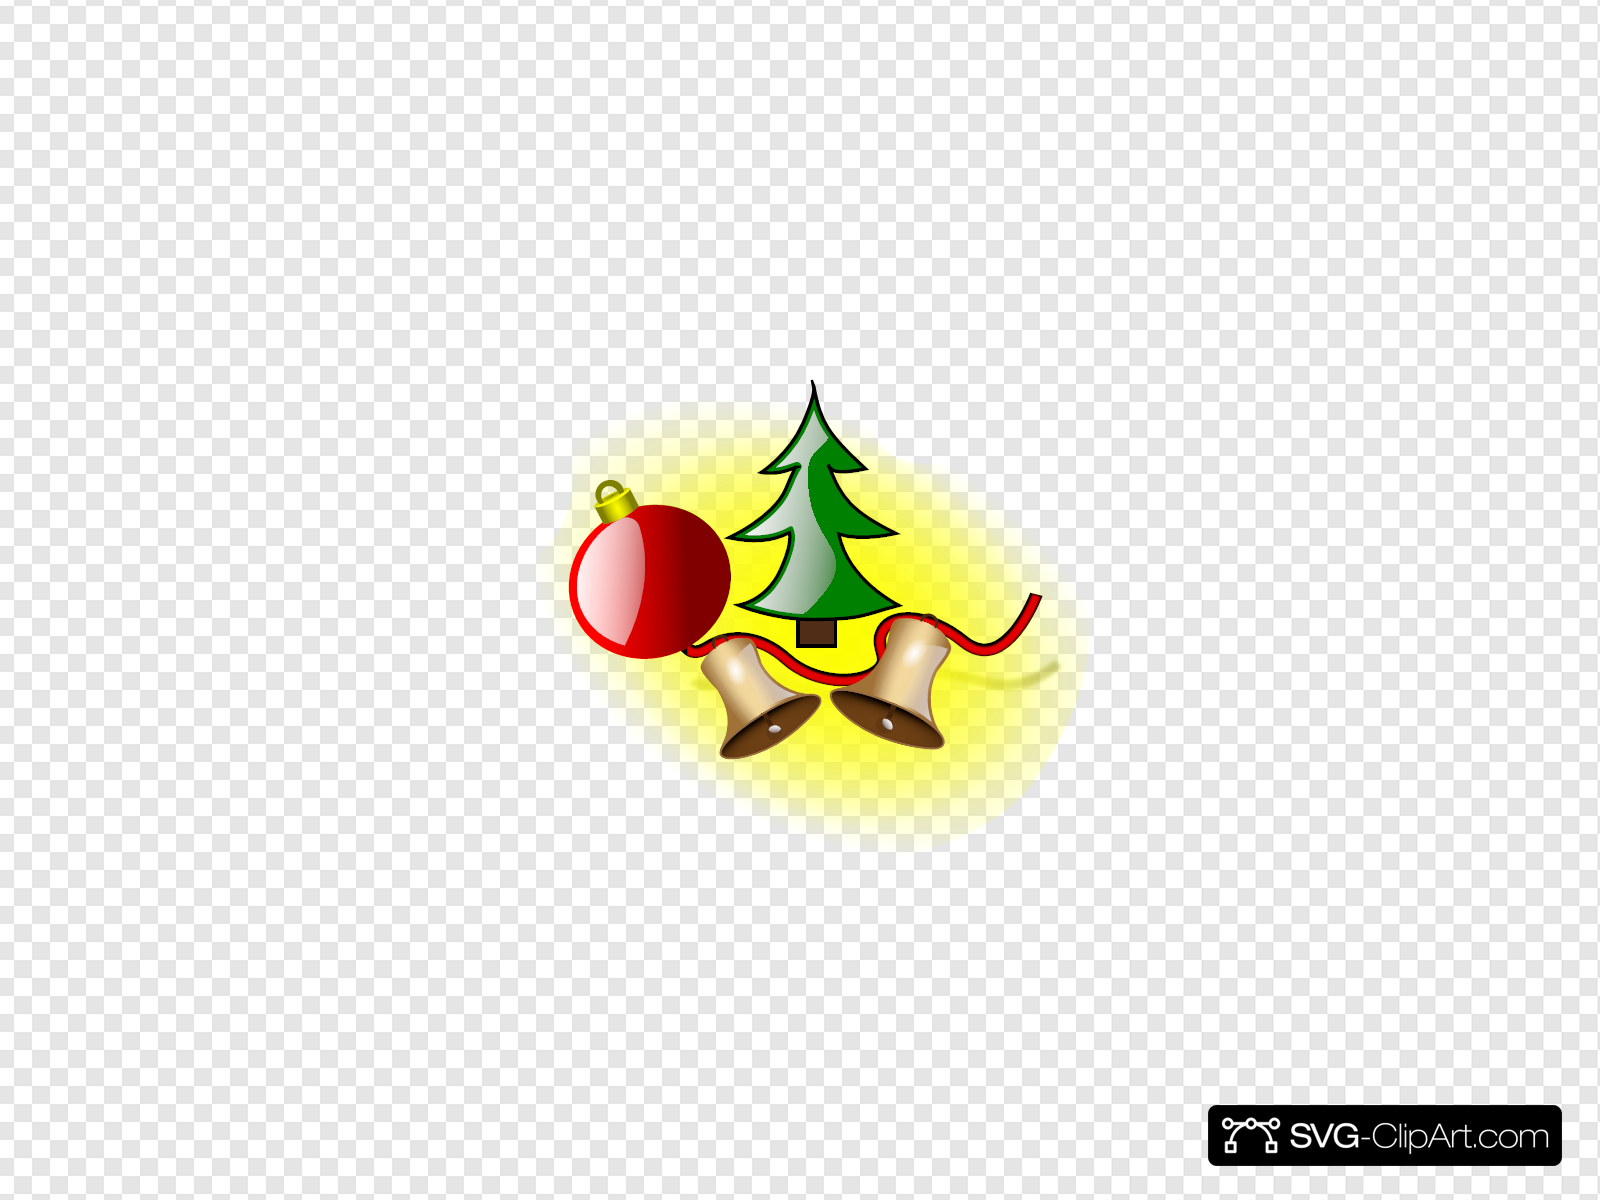 Christmas Bells Clipart.Christmas Bells Clip Art Icon And Svg Svg Clipart